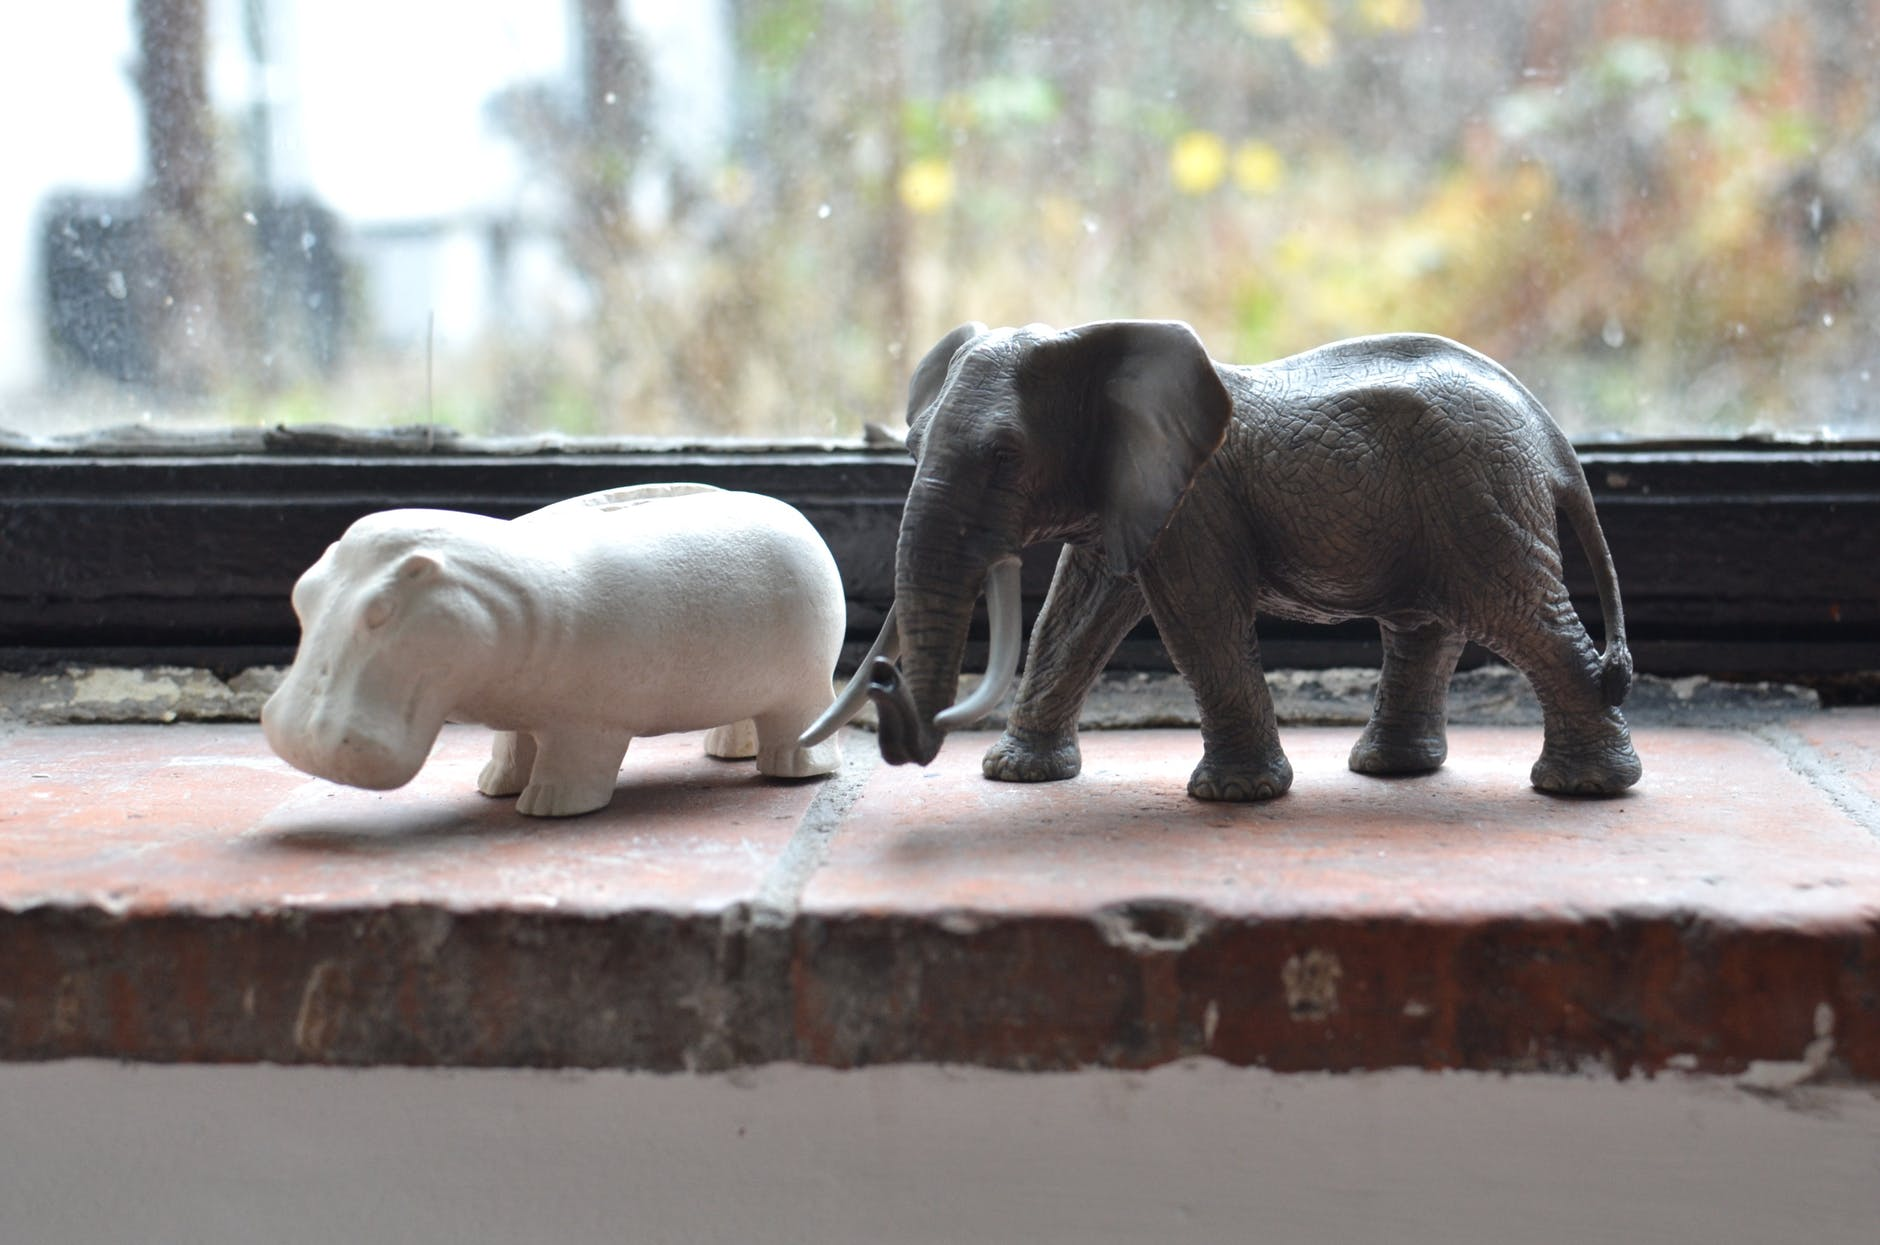 statuette of elephant and hippopotamus on windowsill